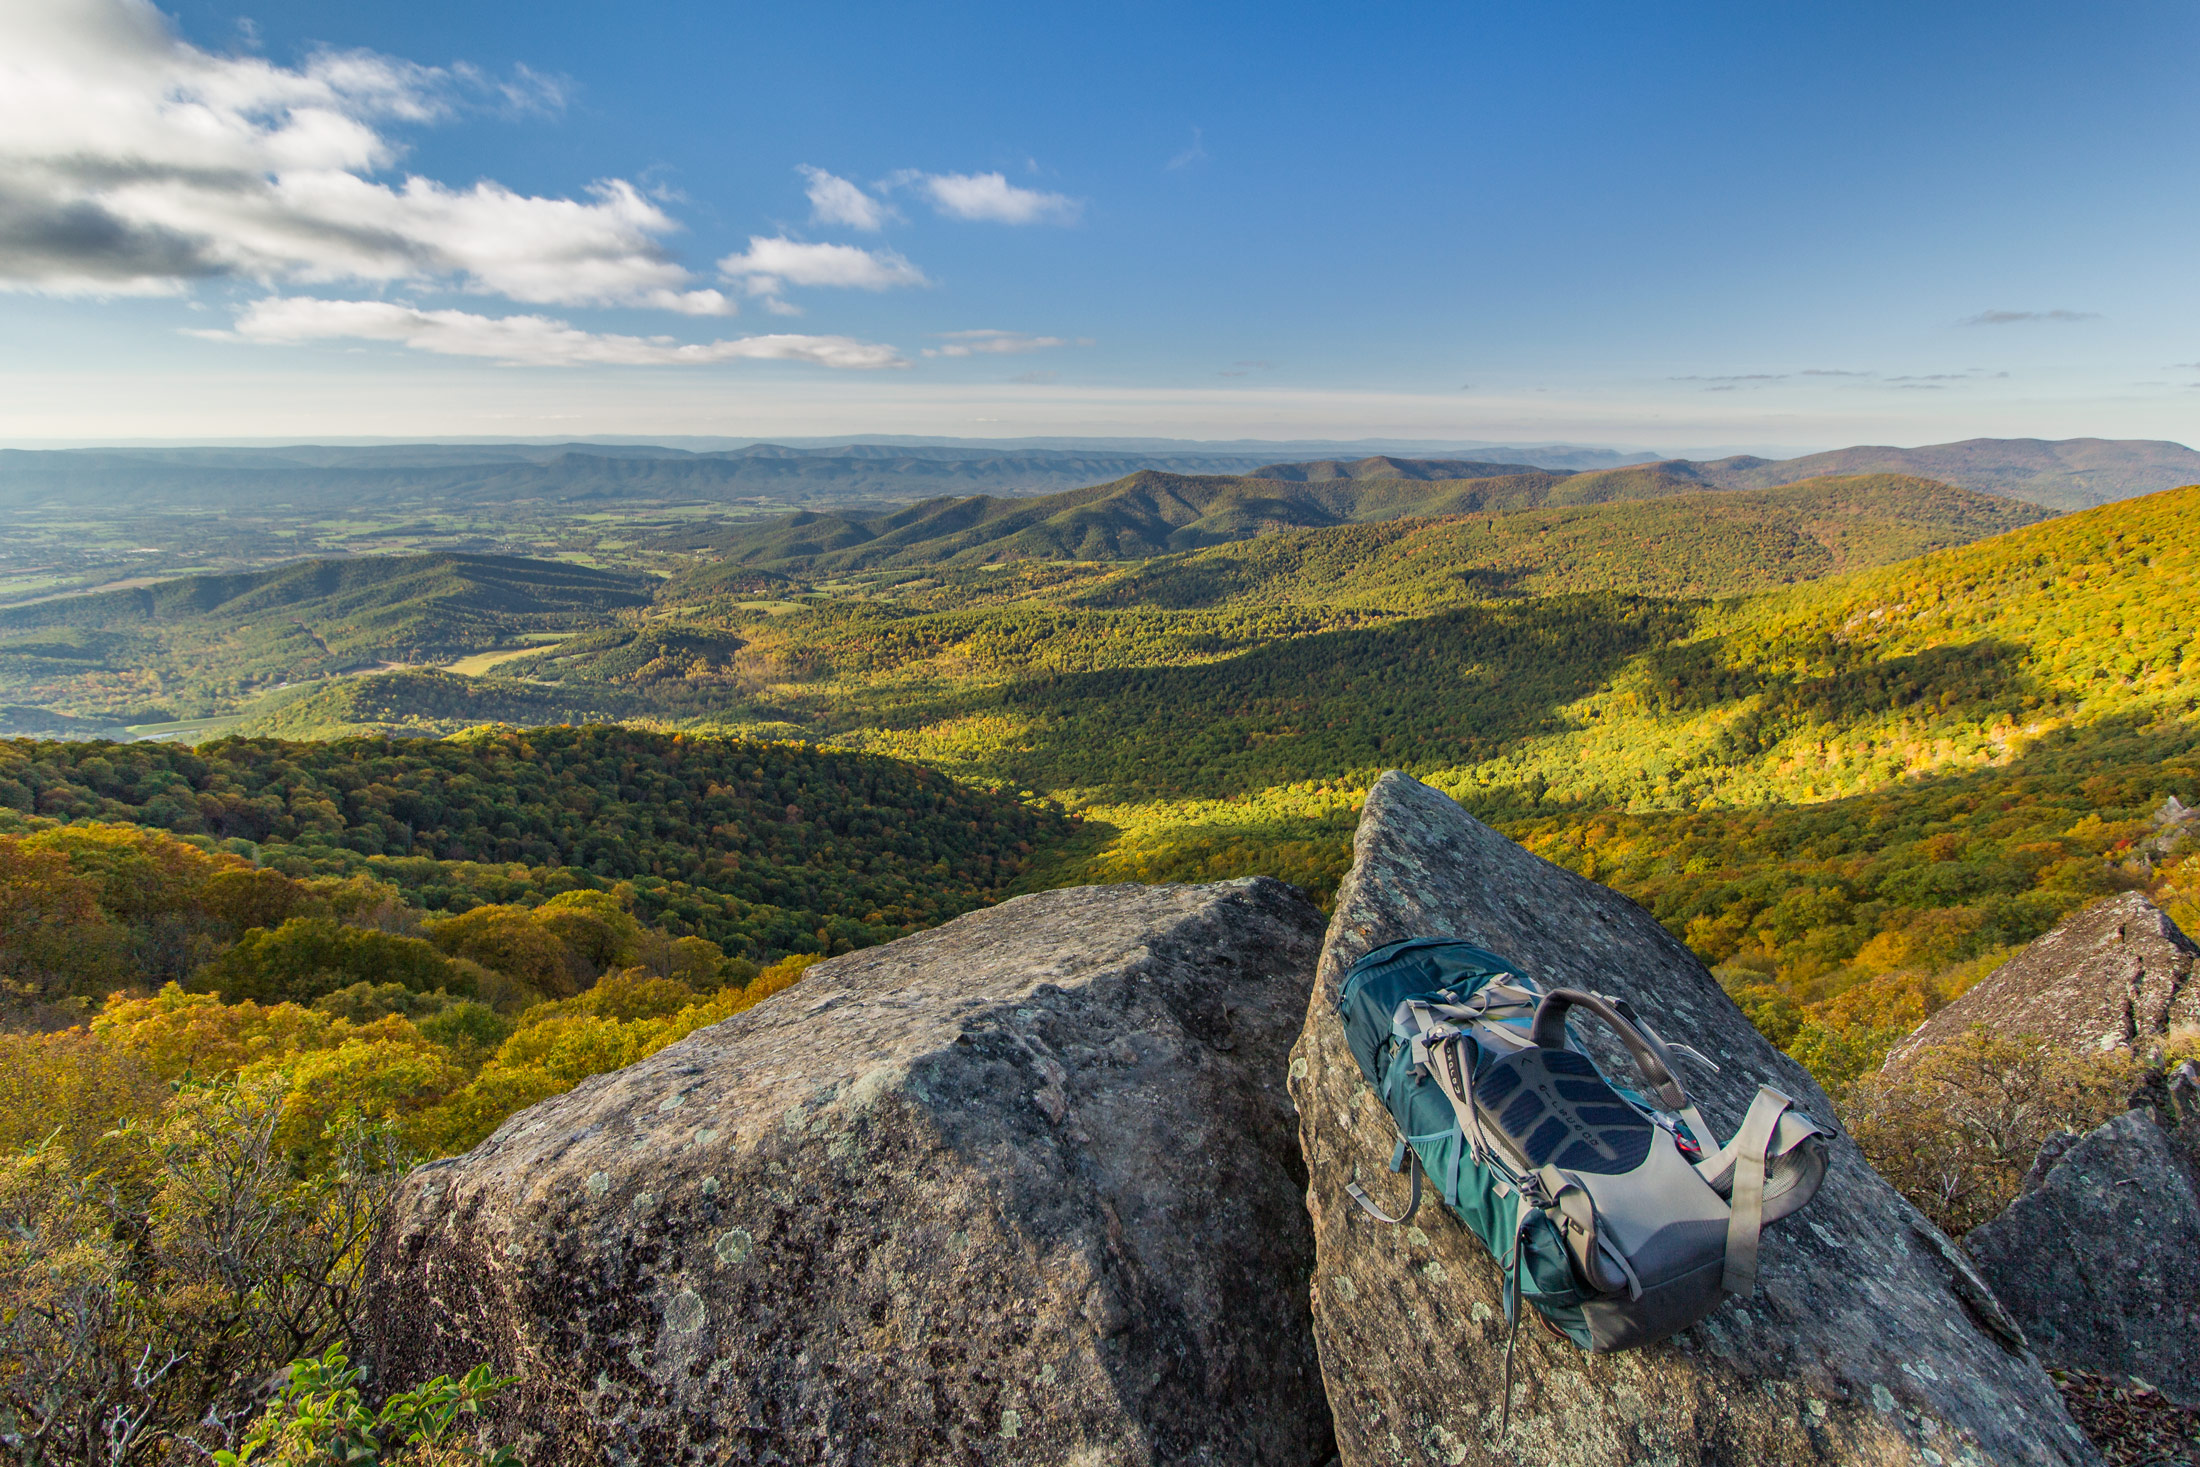 A view overlooking the Shenandoah River valley, Virginia